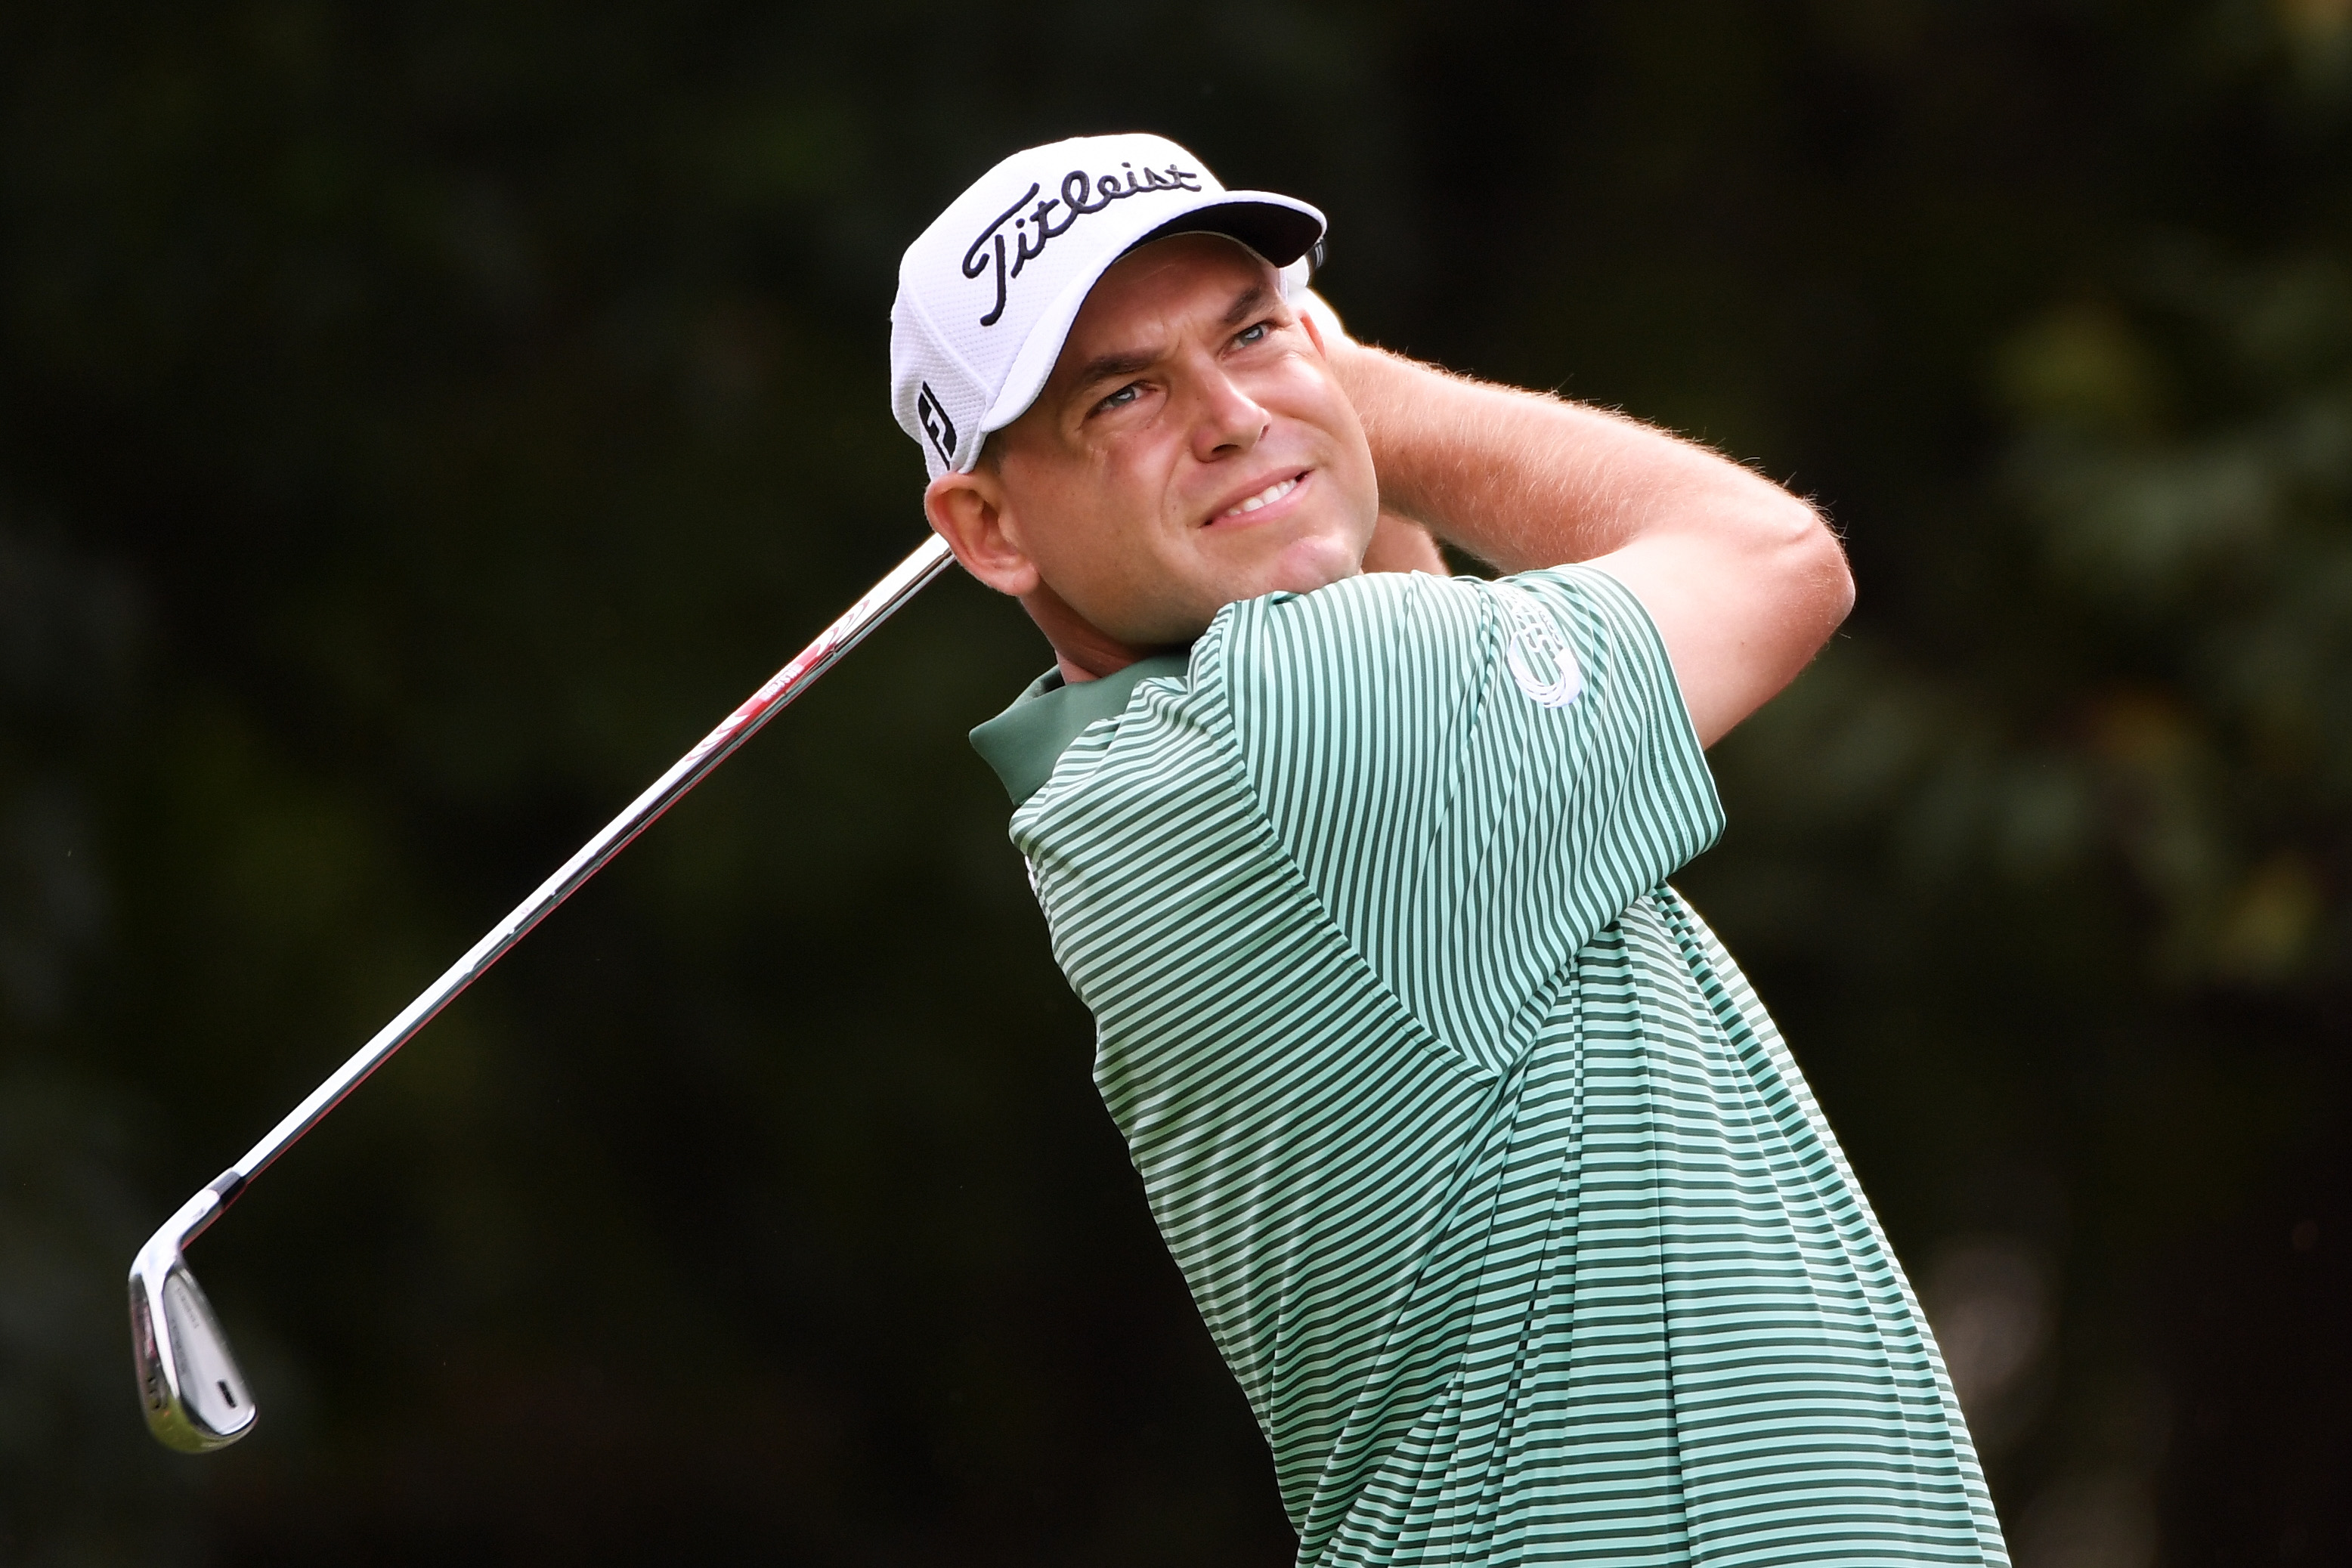 Golfer-Bill-Haas-Involved-In-Car-Crash-That-Killed-The-Driver-He-Was-With-Clipped-Actor-Luke-Wilsons-Car